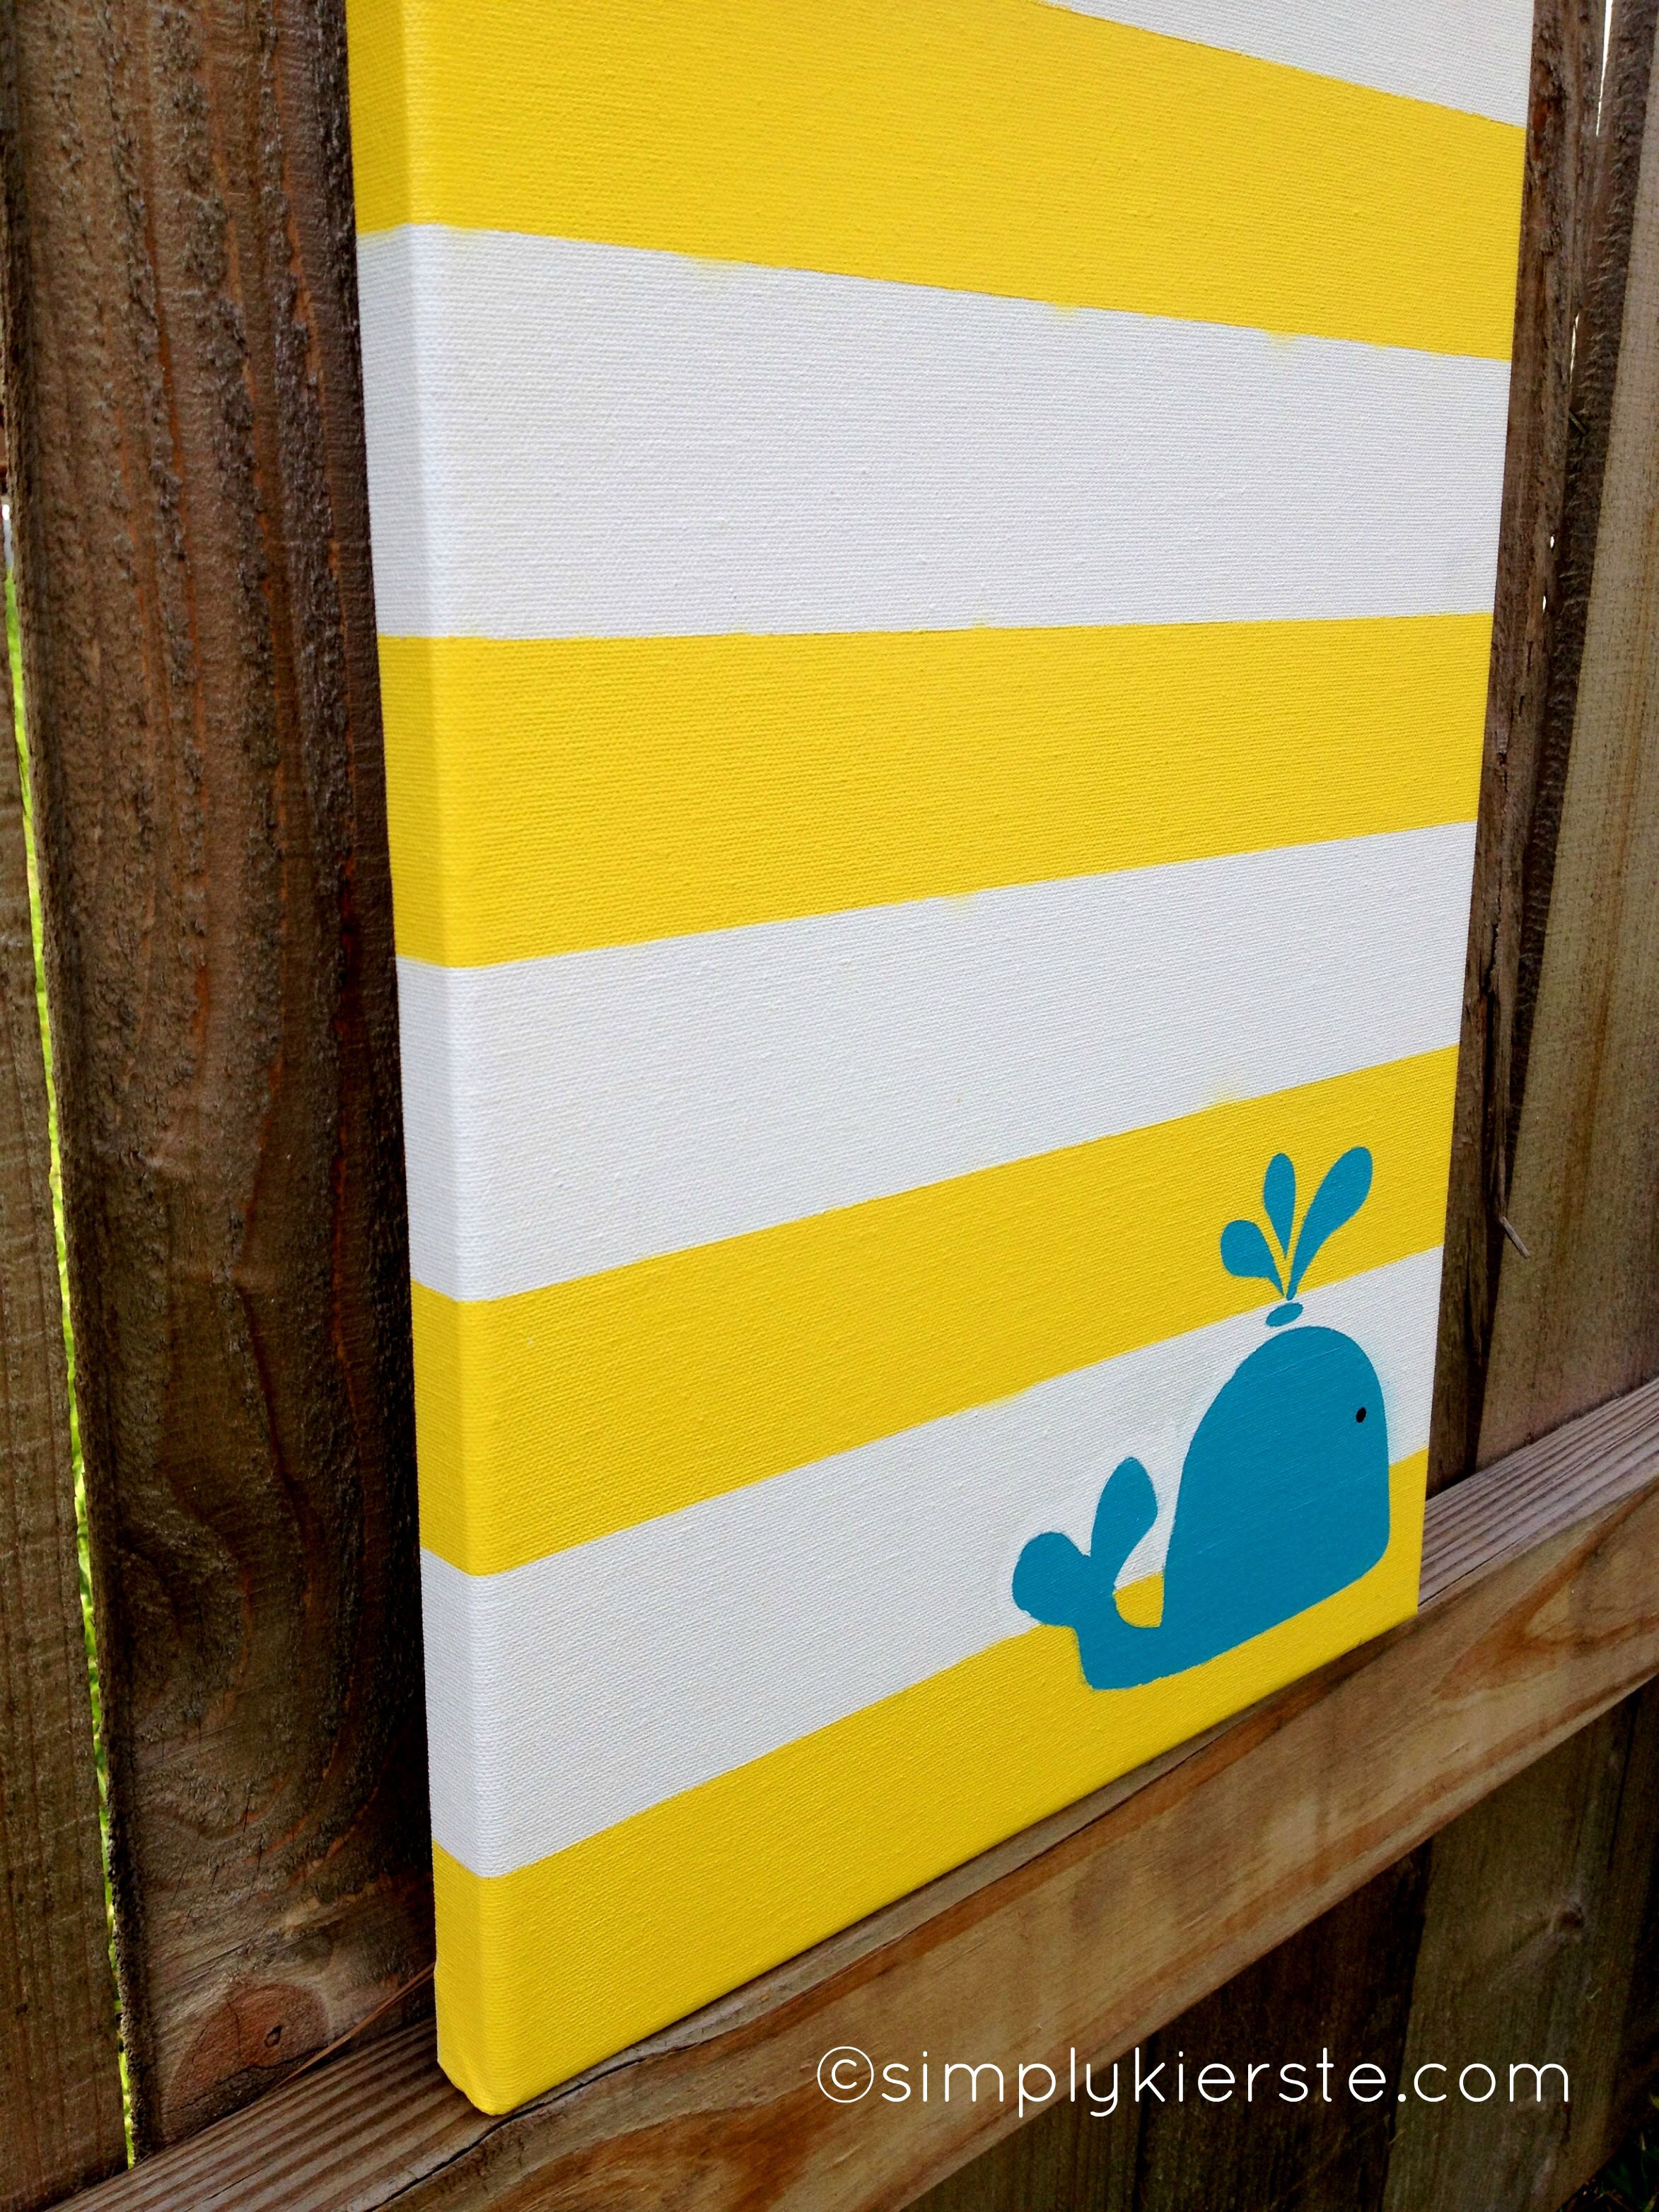 Pin by Laura Wise on paint party | Pinterest | Paint party ...